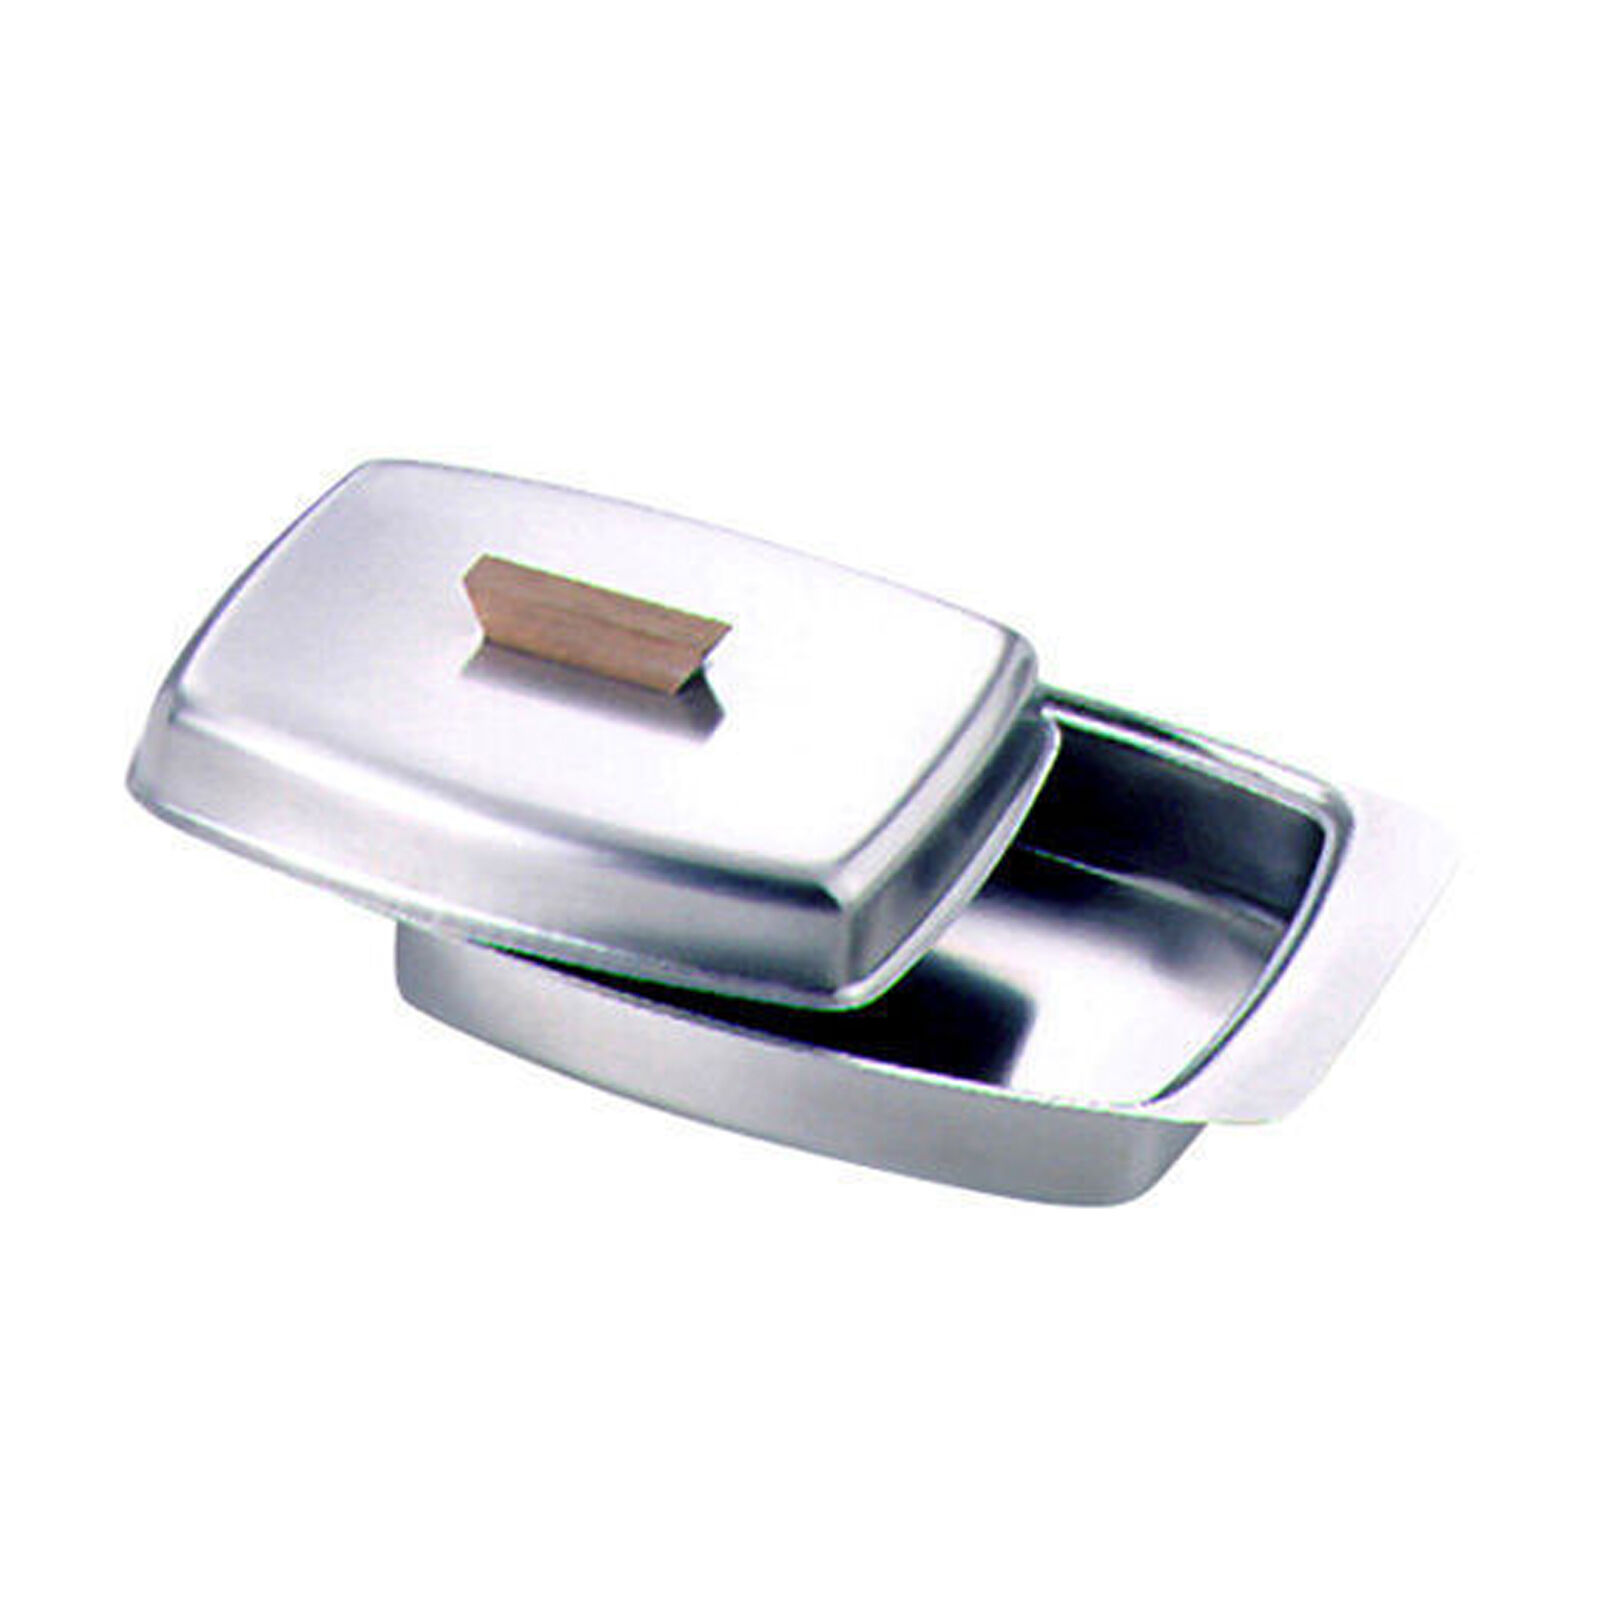 Butter Dish Lid With Wooden Knob Stainless Steel 11728